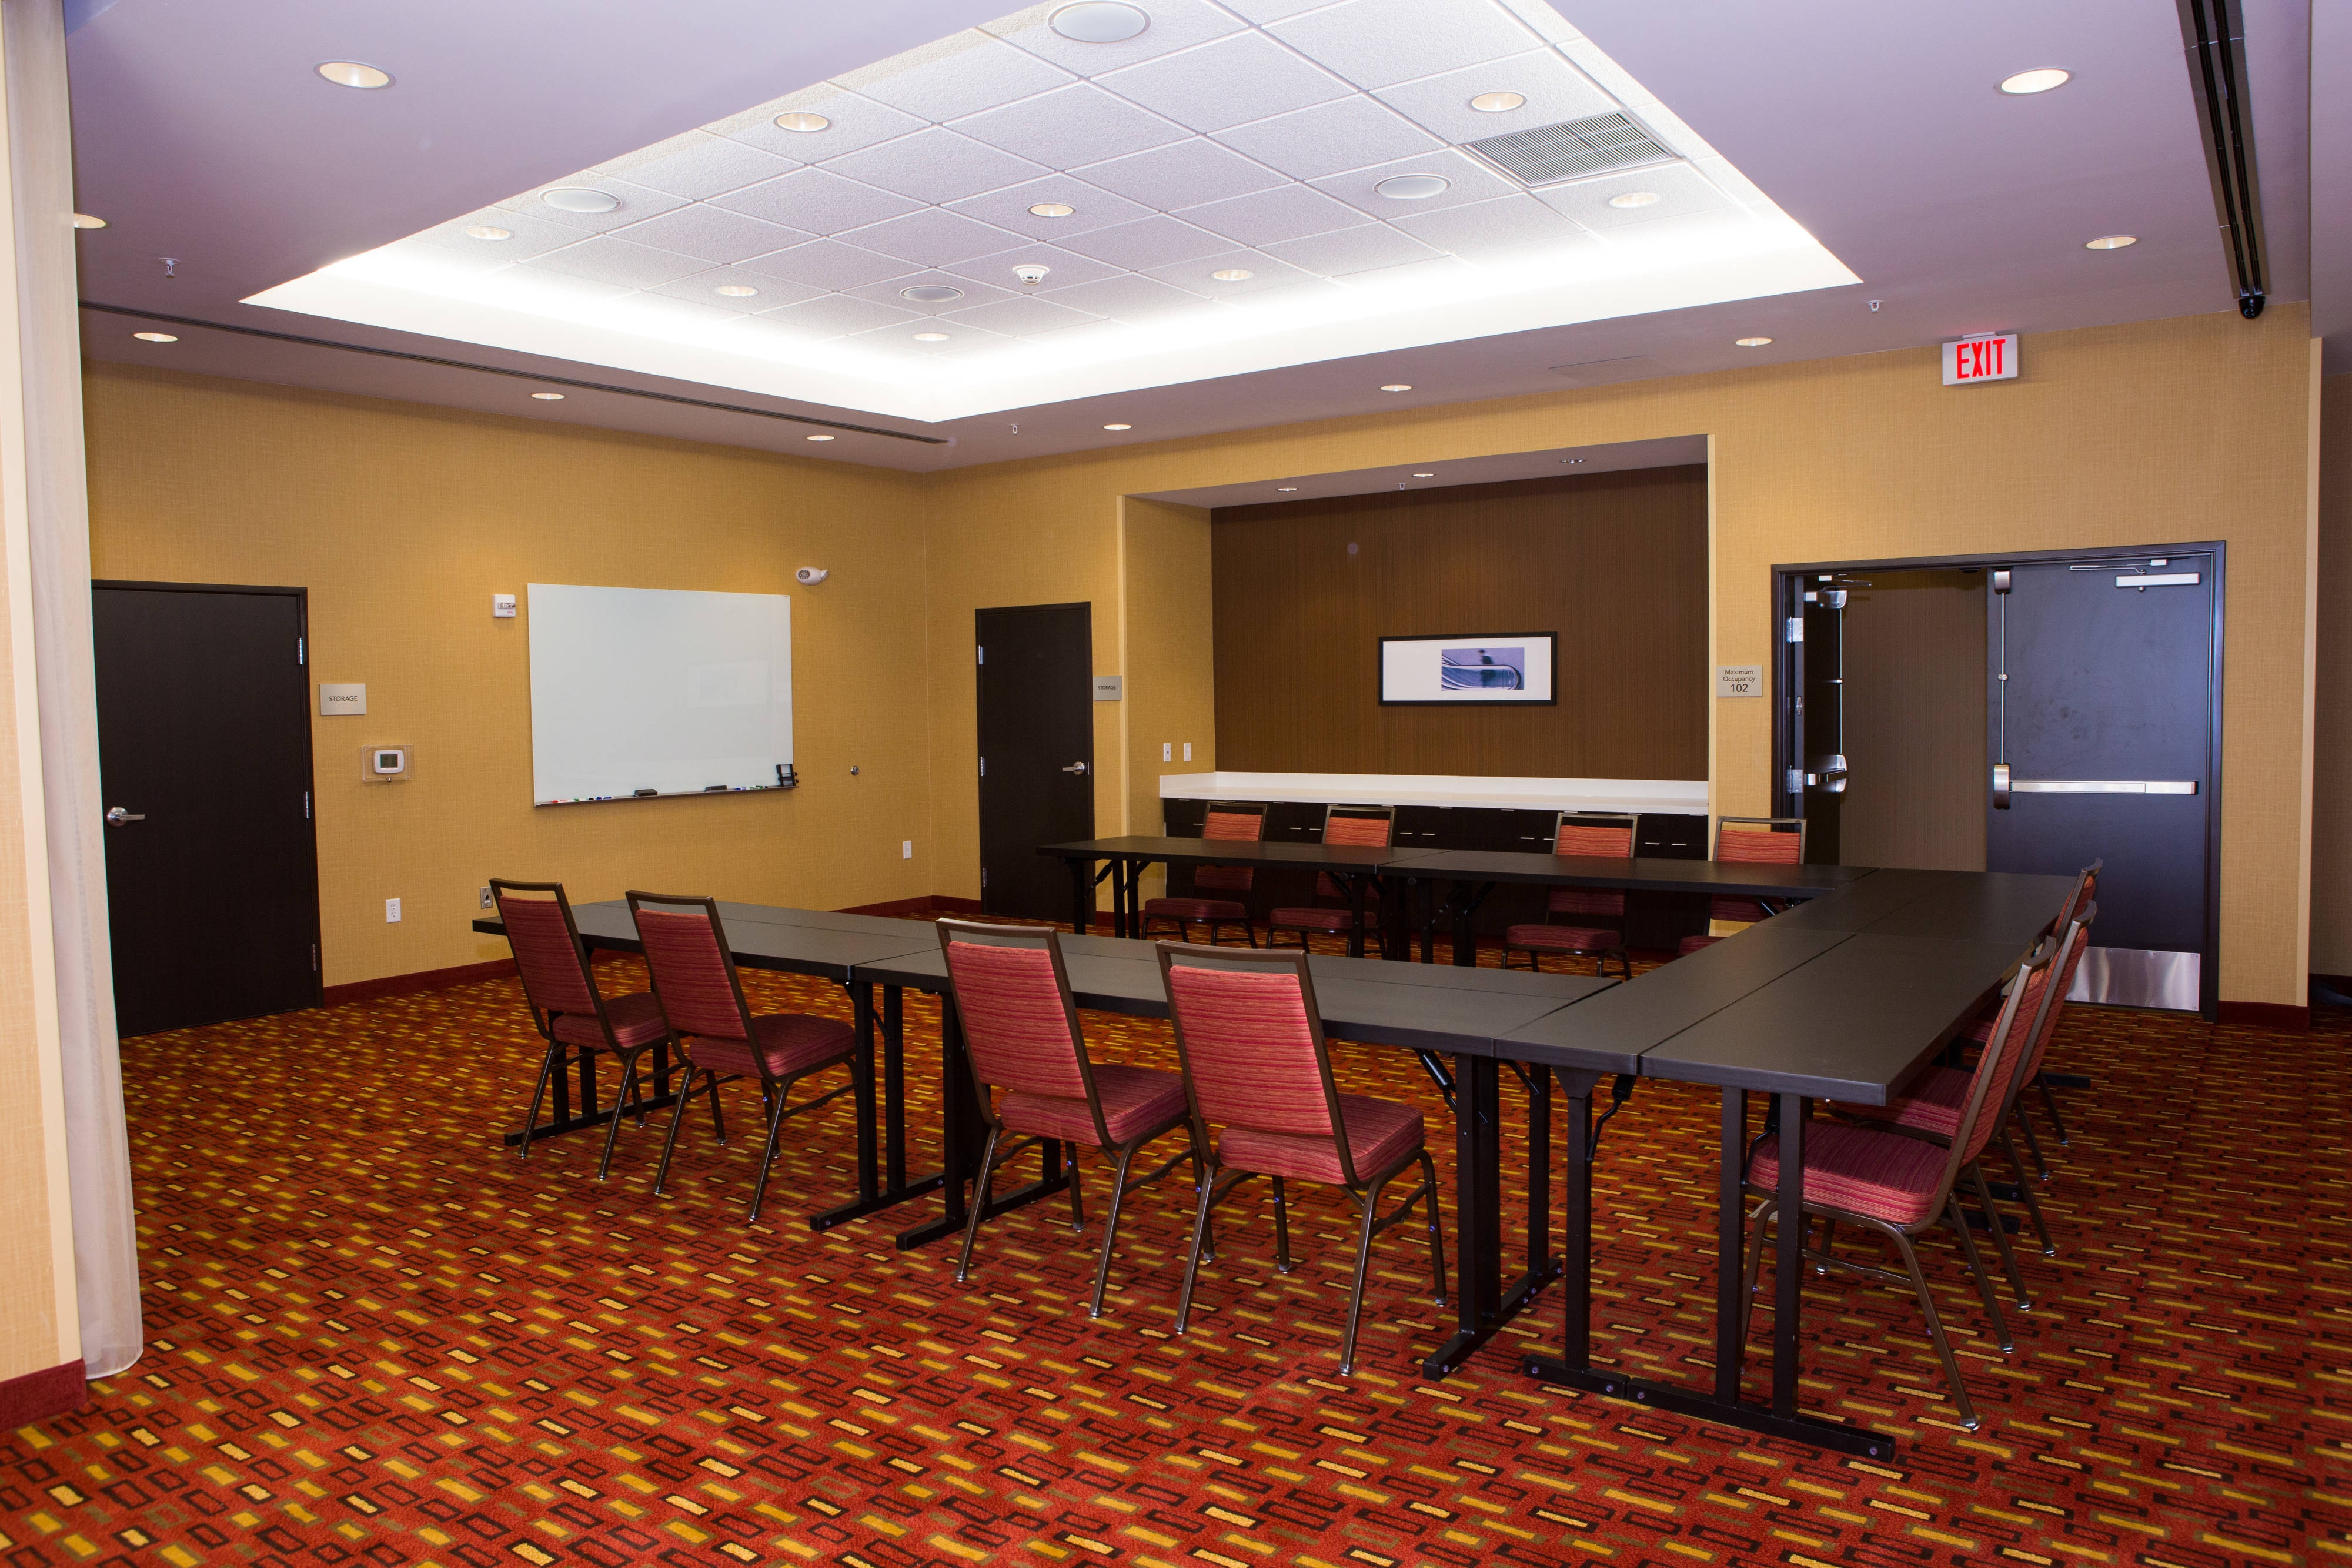 Will Rogers Meeting Room – U-Shape Setup